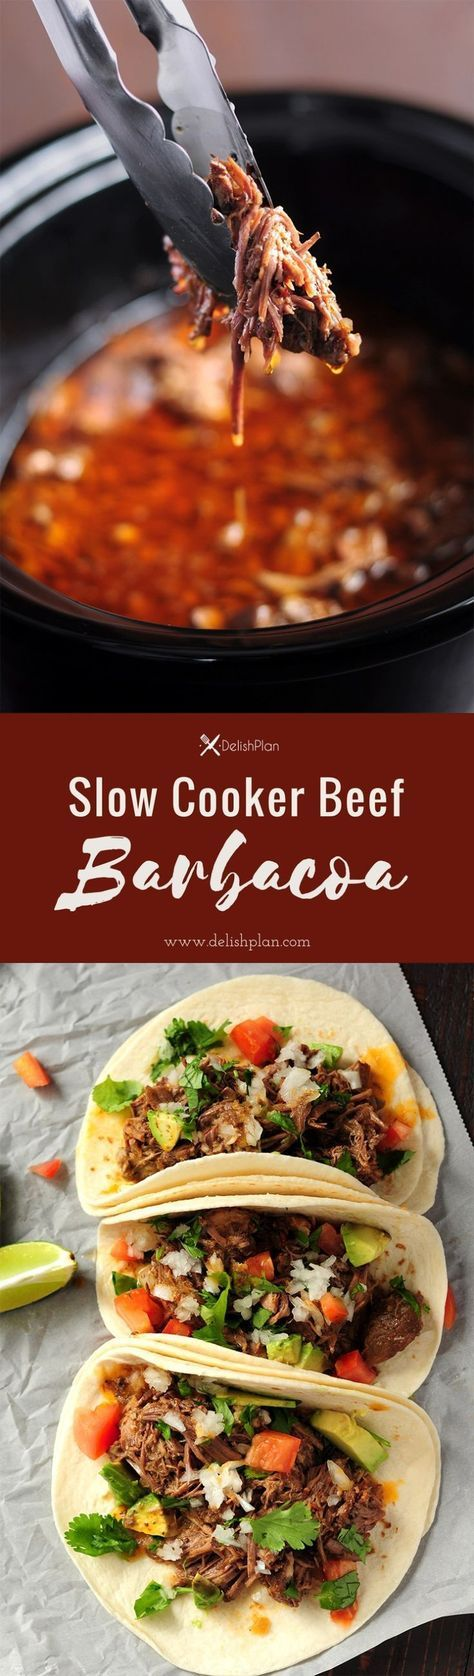 Extremely tender beef barbacoa slow-cooked in a super savory sauce. This recipe only takes 5 mins of hands-on time. Enjoy barbacoa tacos anytime! Want more slow cooker recipes like this one? There are tons in our slow cooker cookbook. Click the image to s